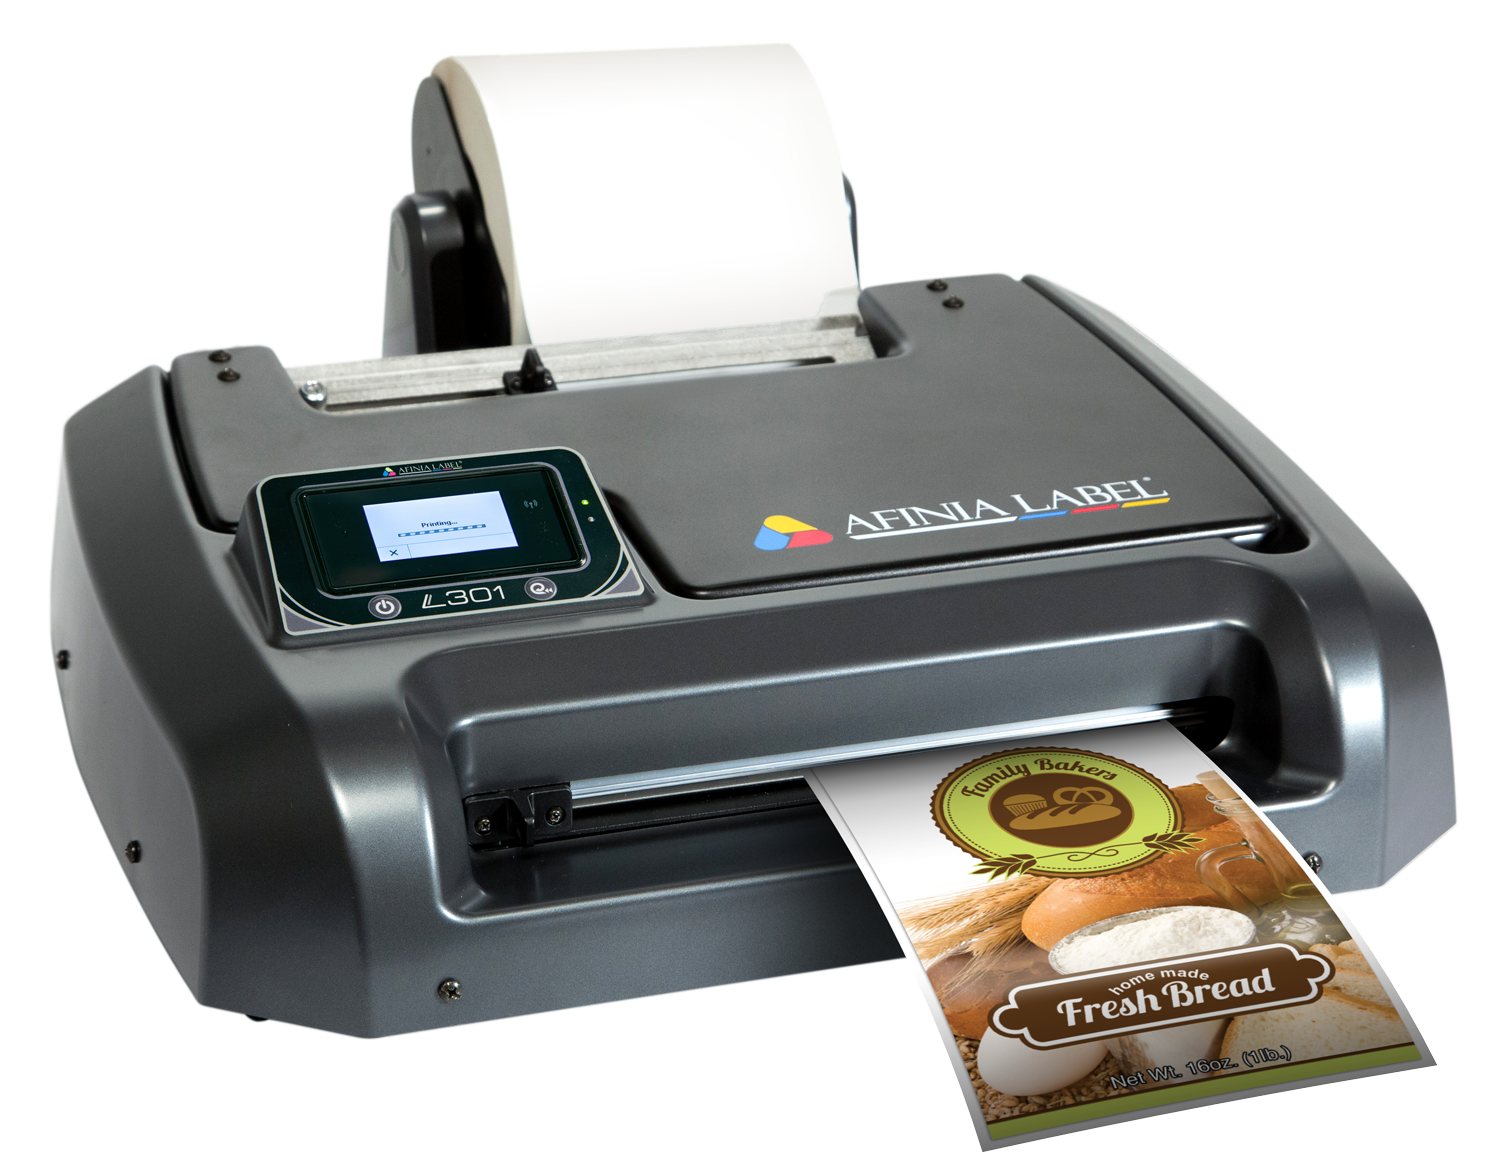 Color printer label - L301 Professional Color Label Printer For Small Business Part 26849 Flexibility For Growing Brands Bringing Label Printing